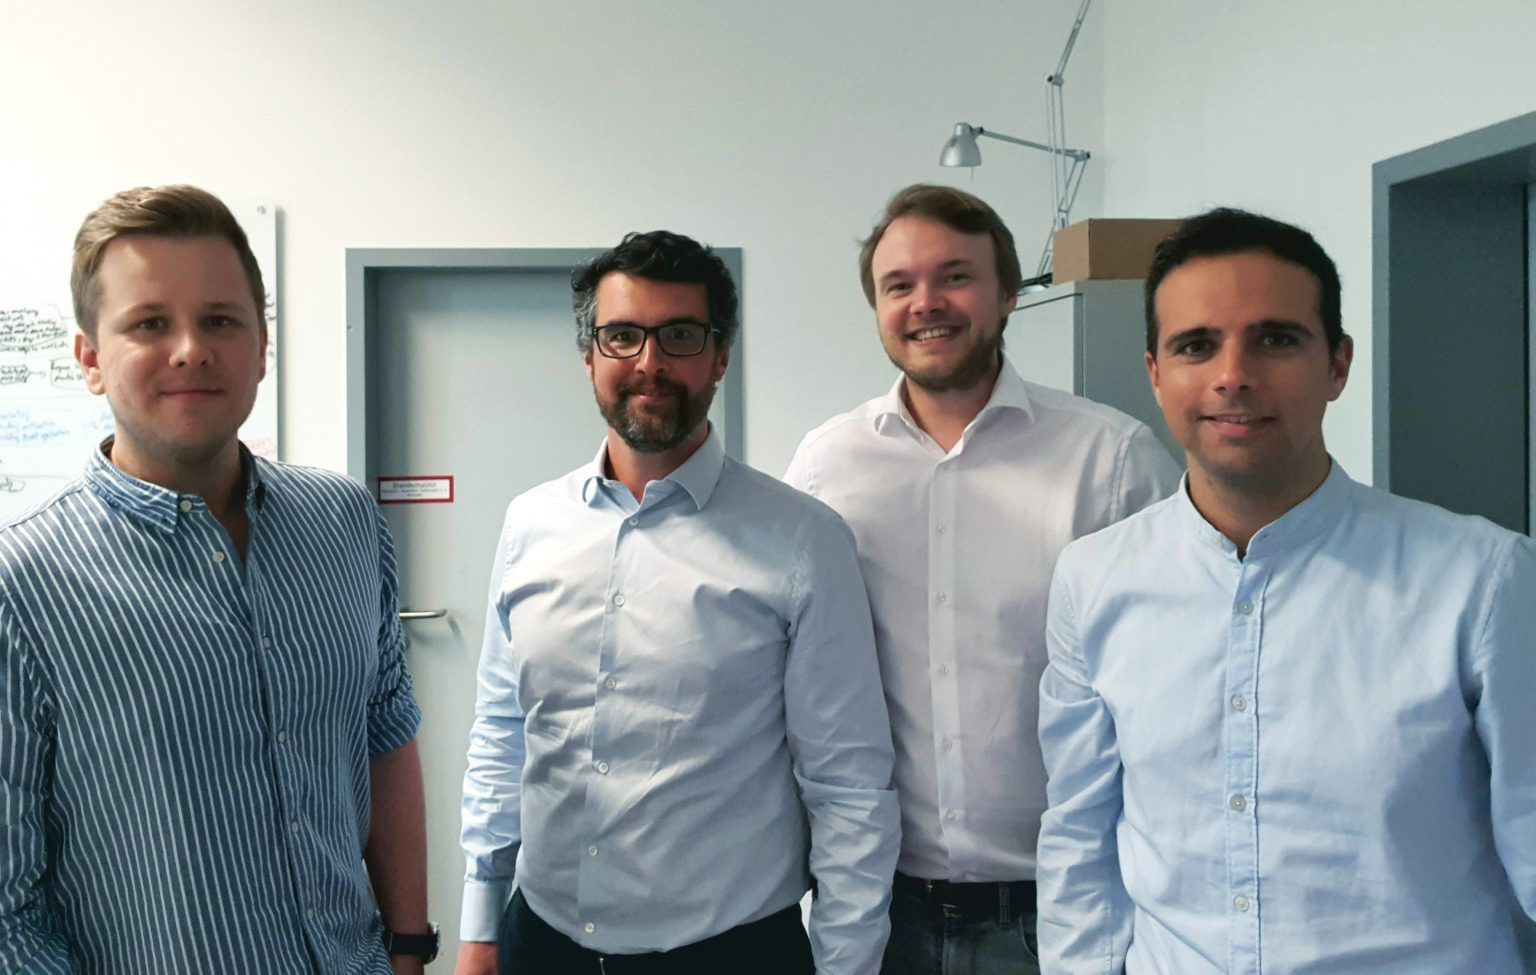 Landed our first investor: IT Inkubator GmbH